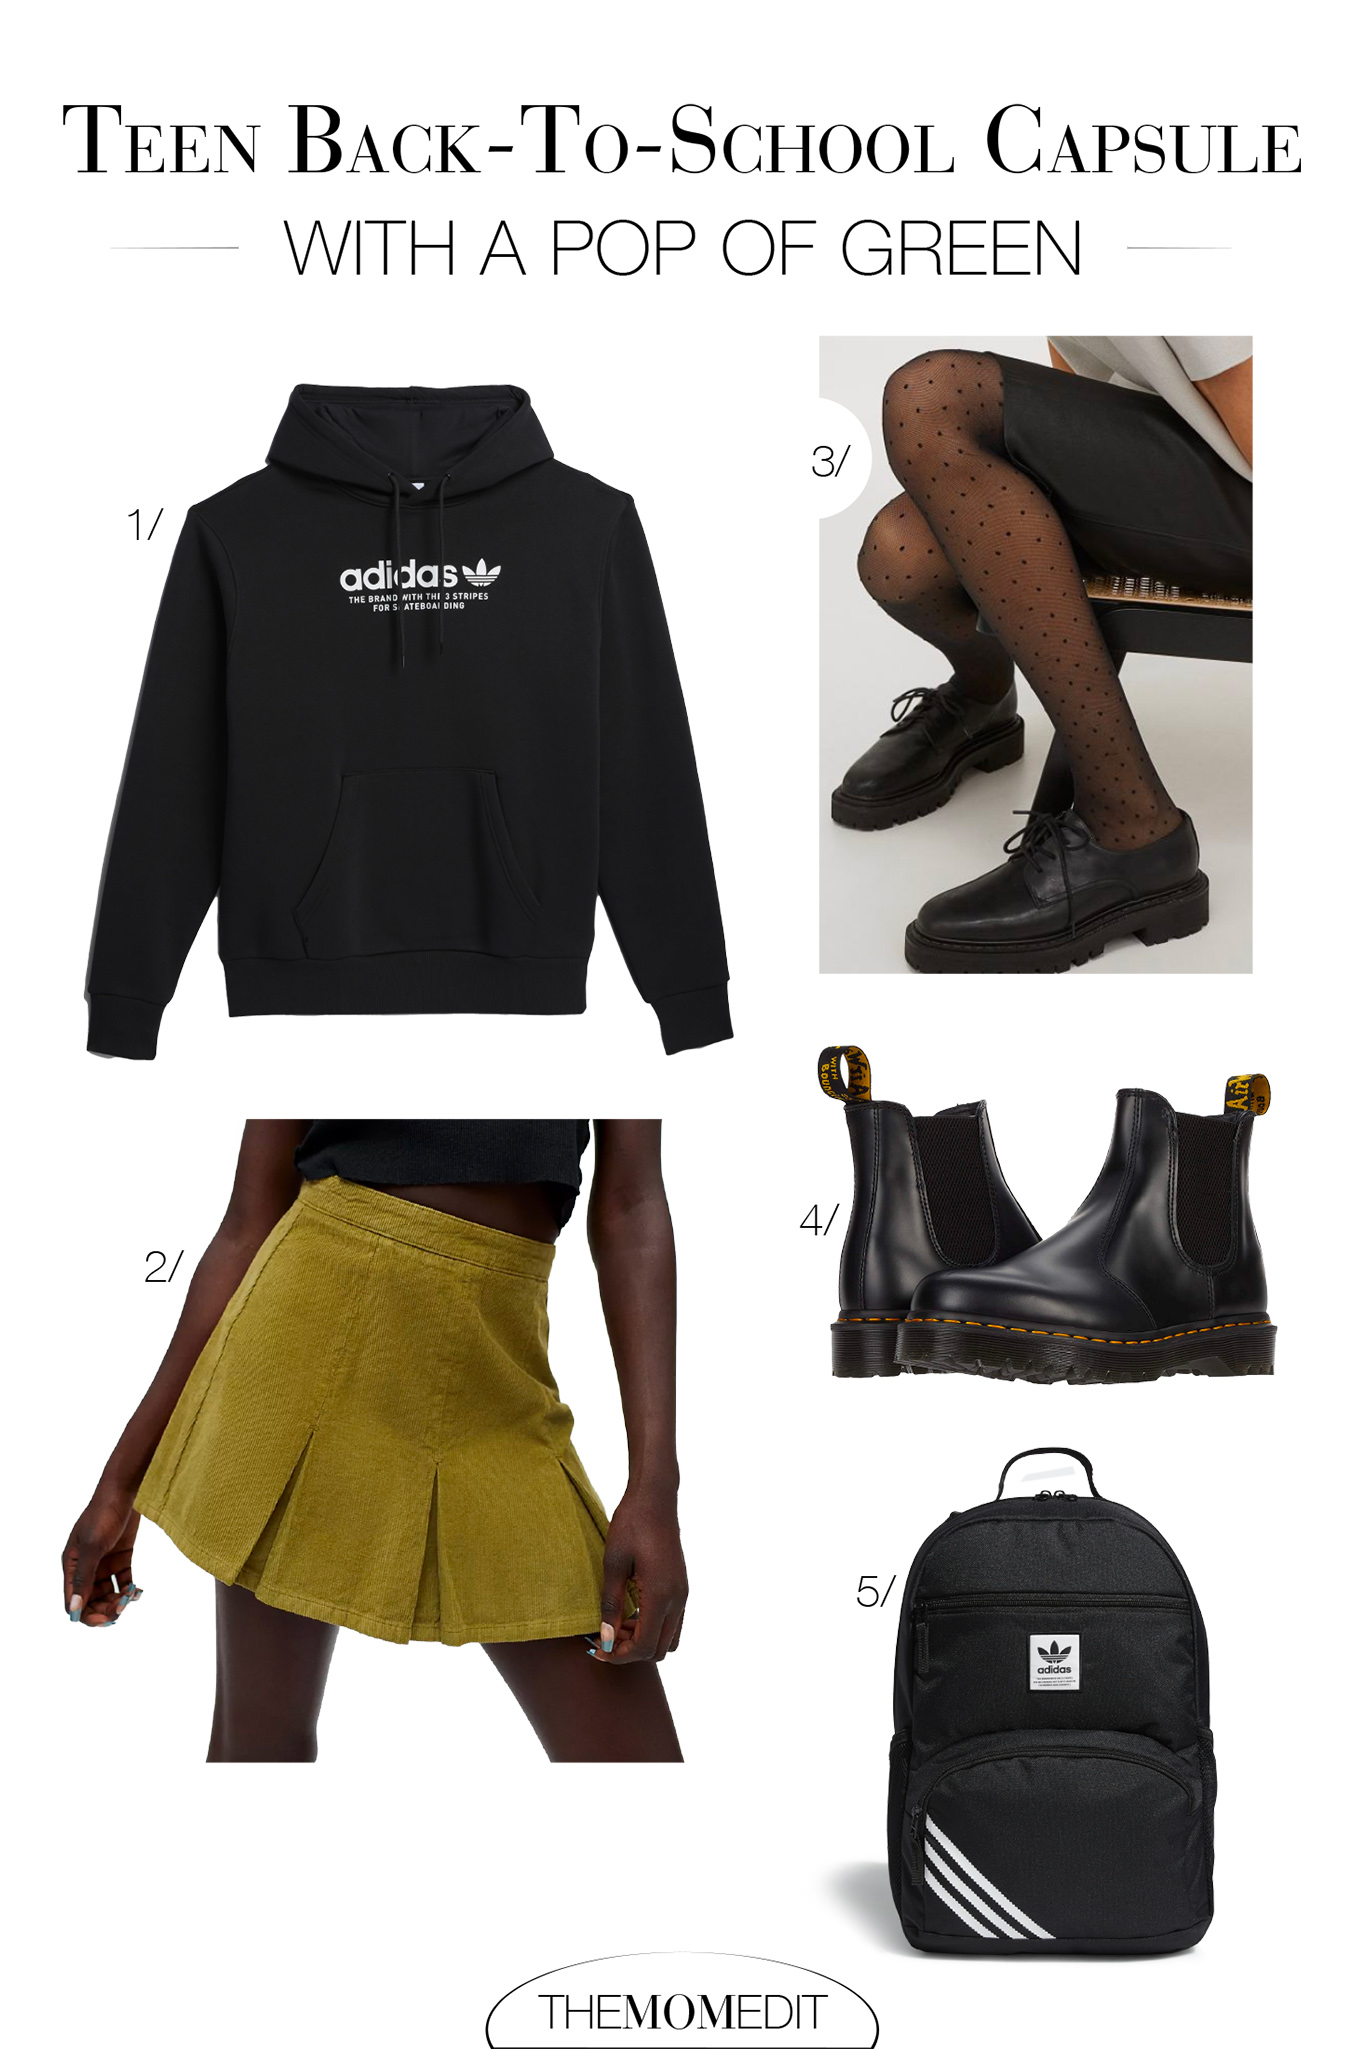 I'm loving this whole mix of cute pieces, edgy pieces & sporty ones, too, plus an array of classic investment pieces paired w/ a few trendy items. Love.